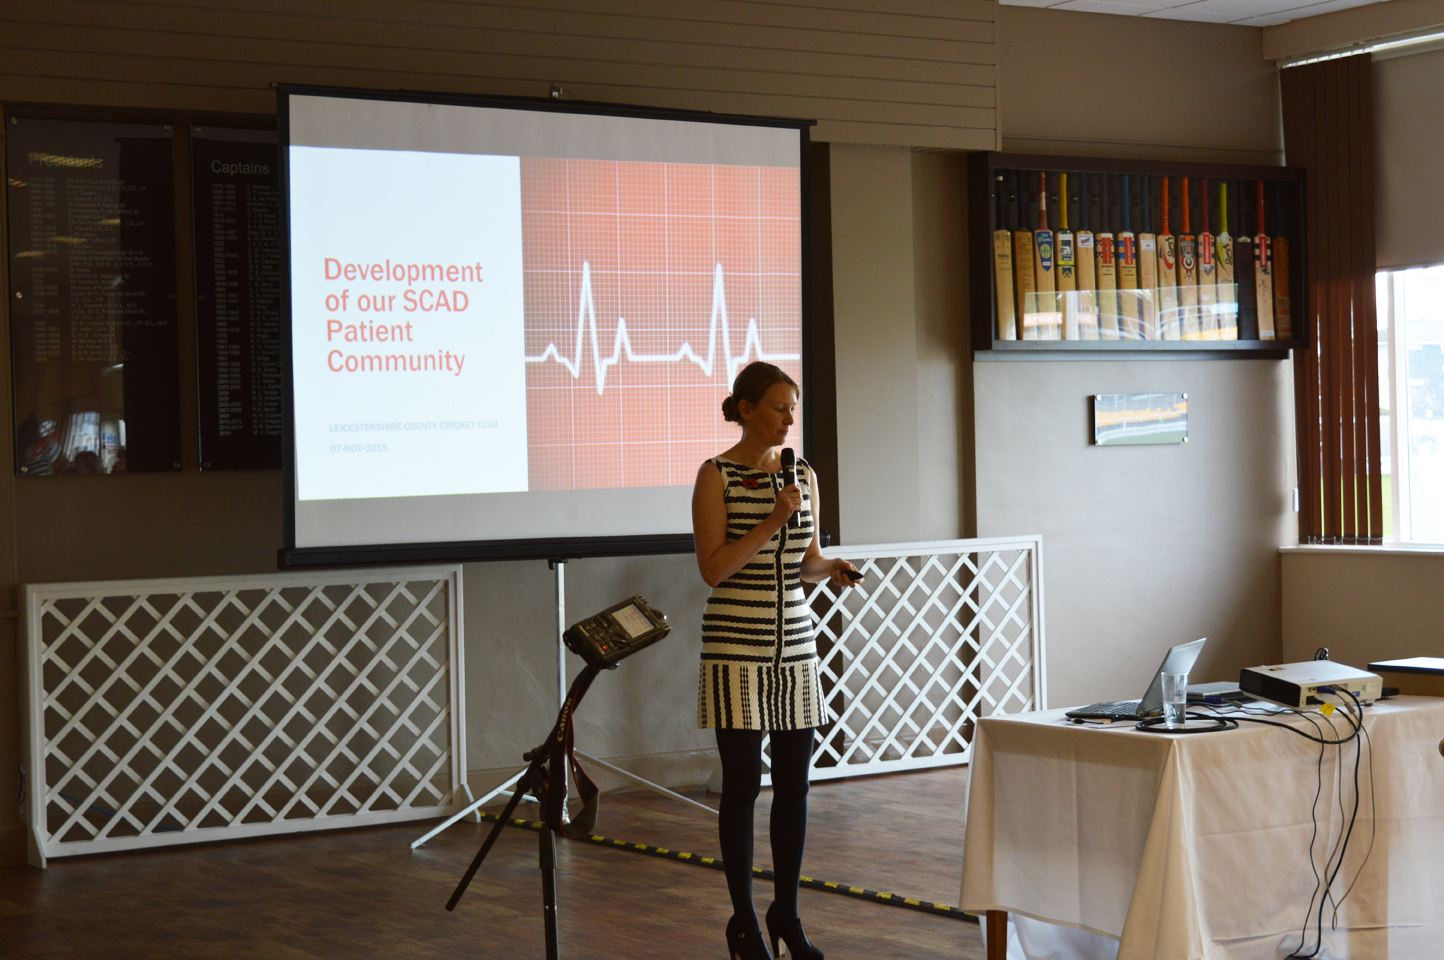 Rebecca Breslin gives an update on patient group activities